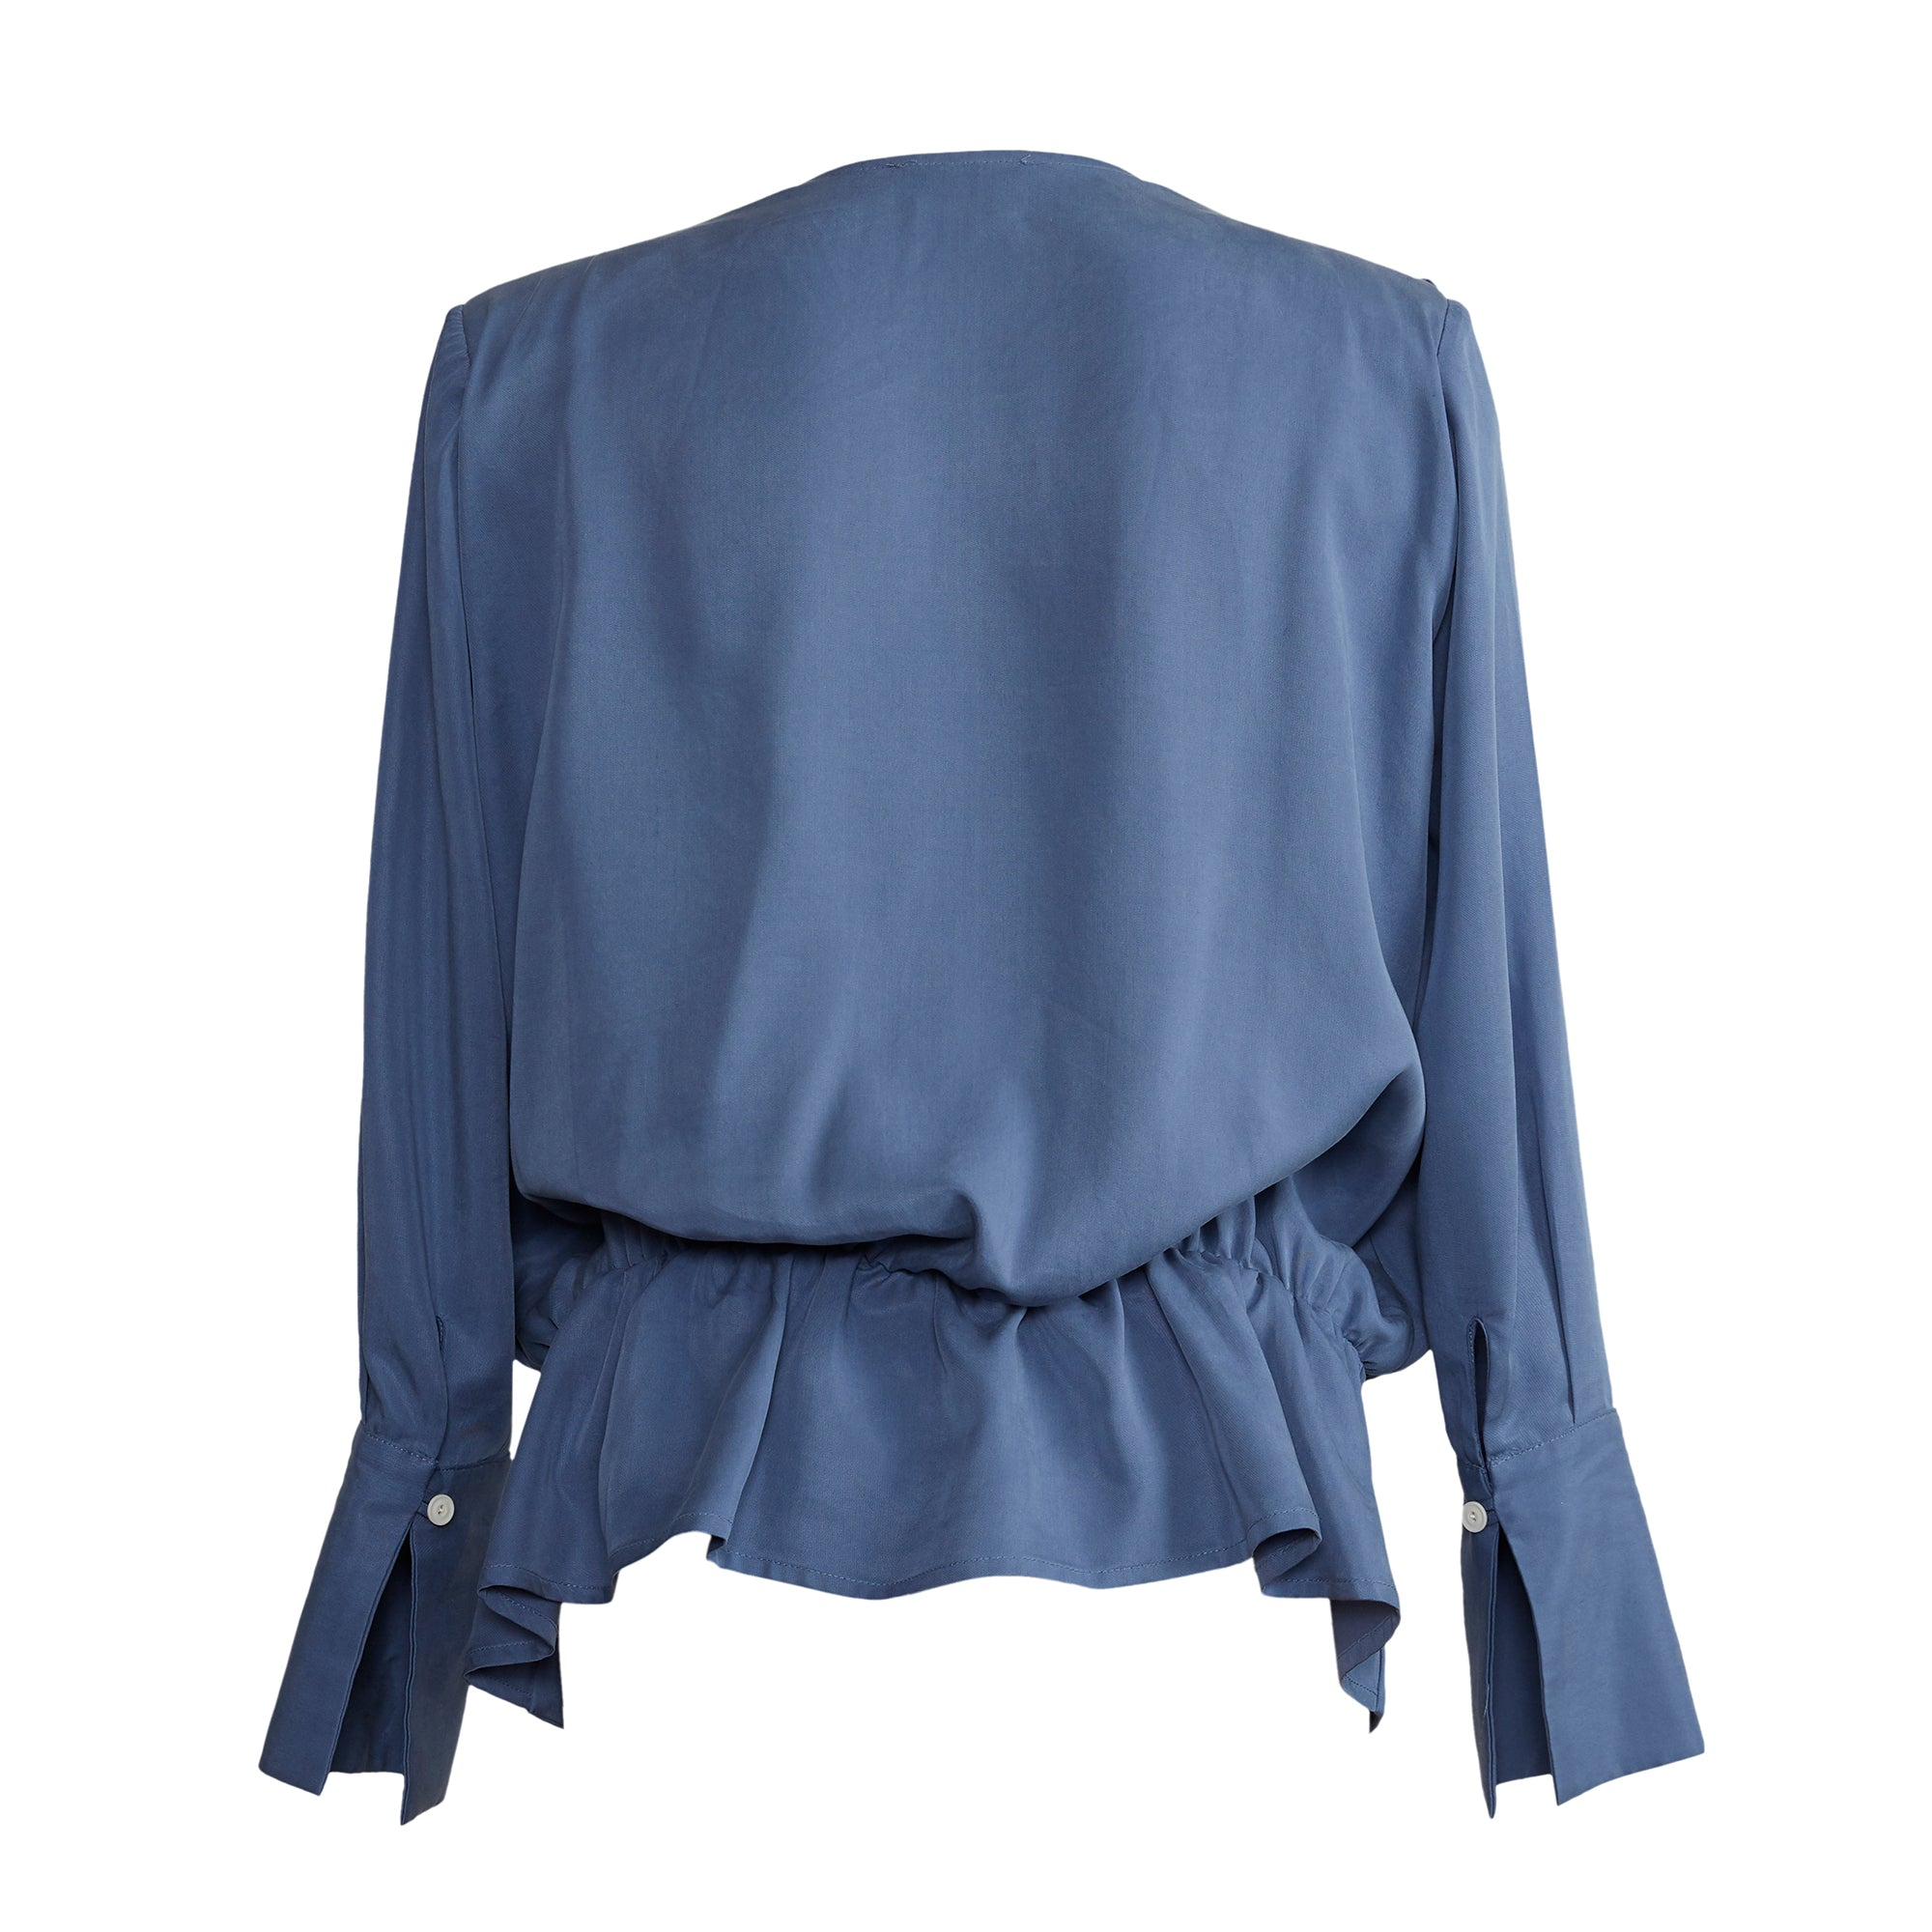 Frampton Slouch Top - was $340